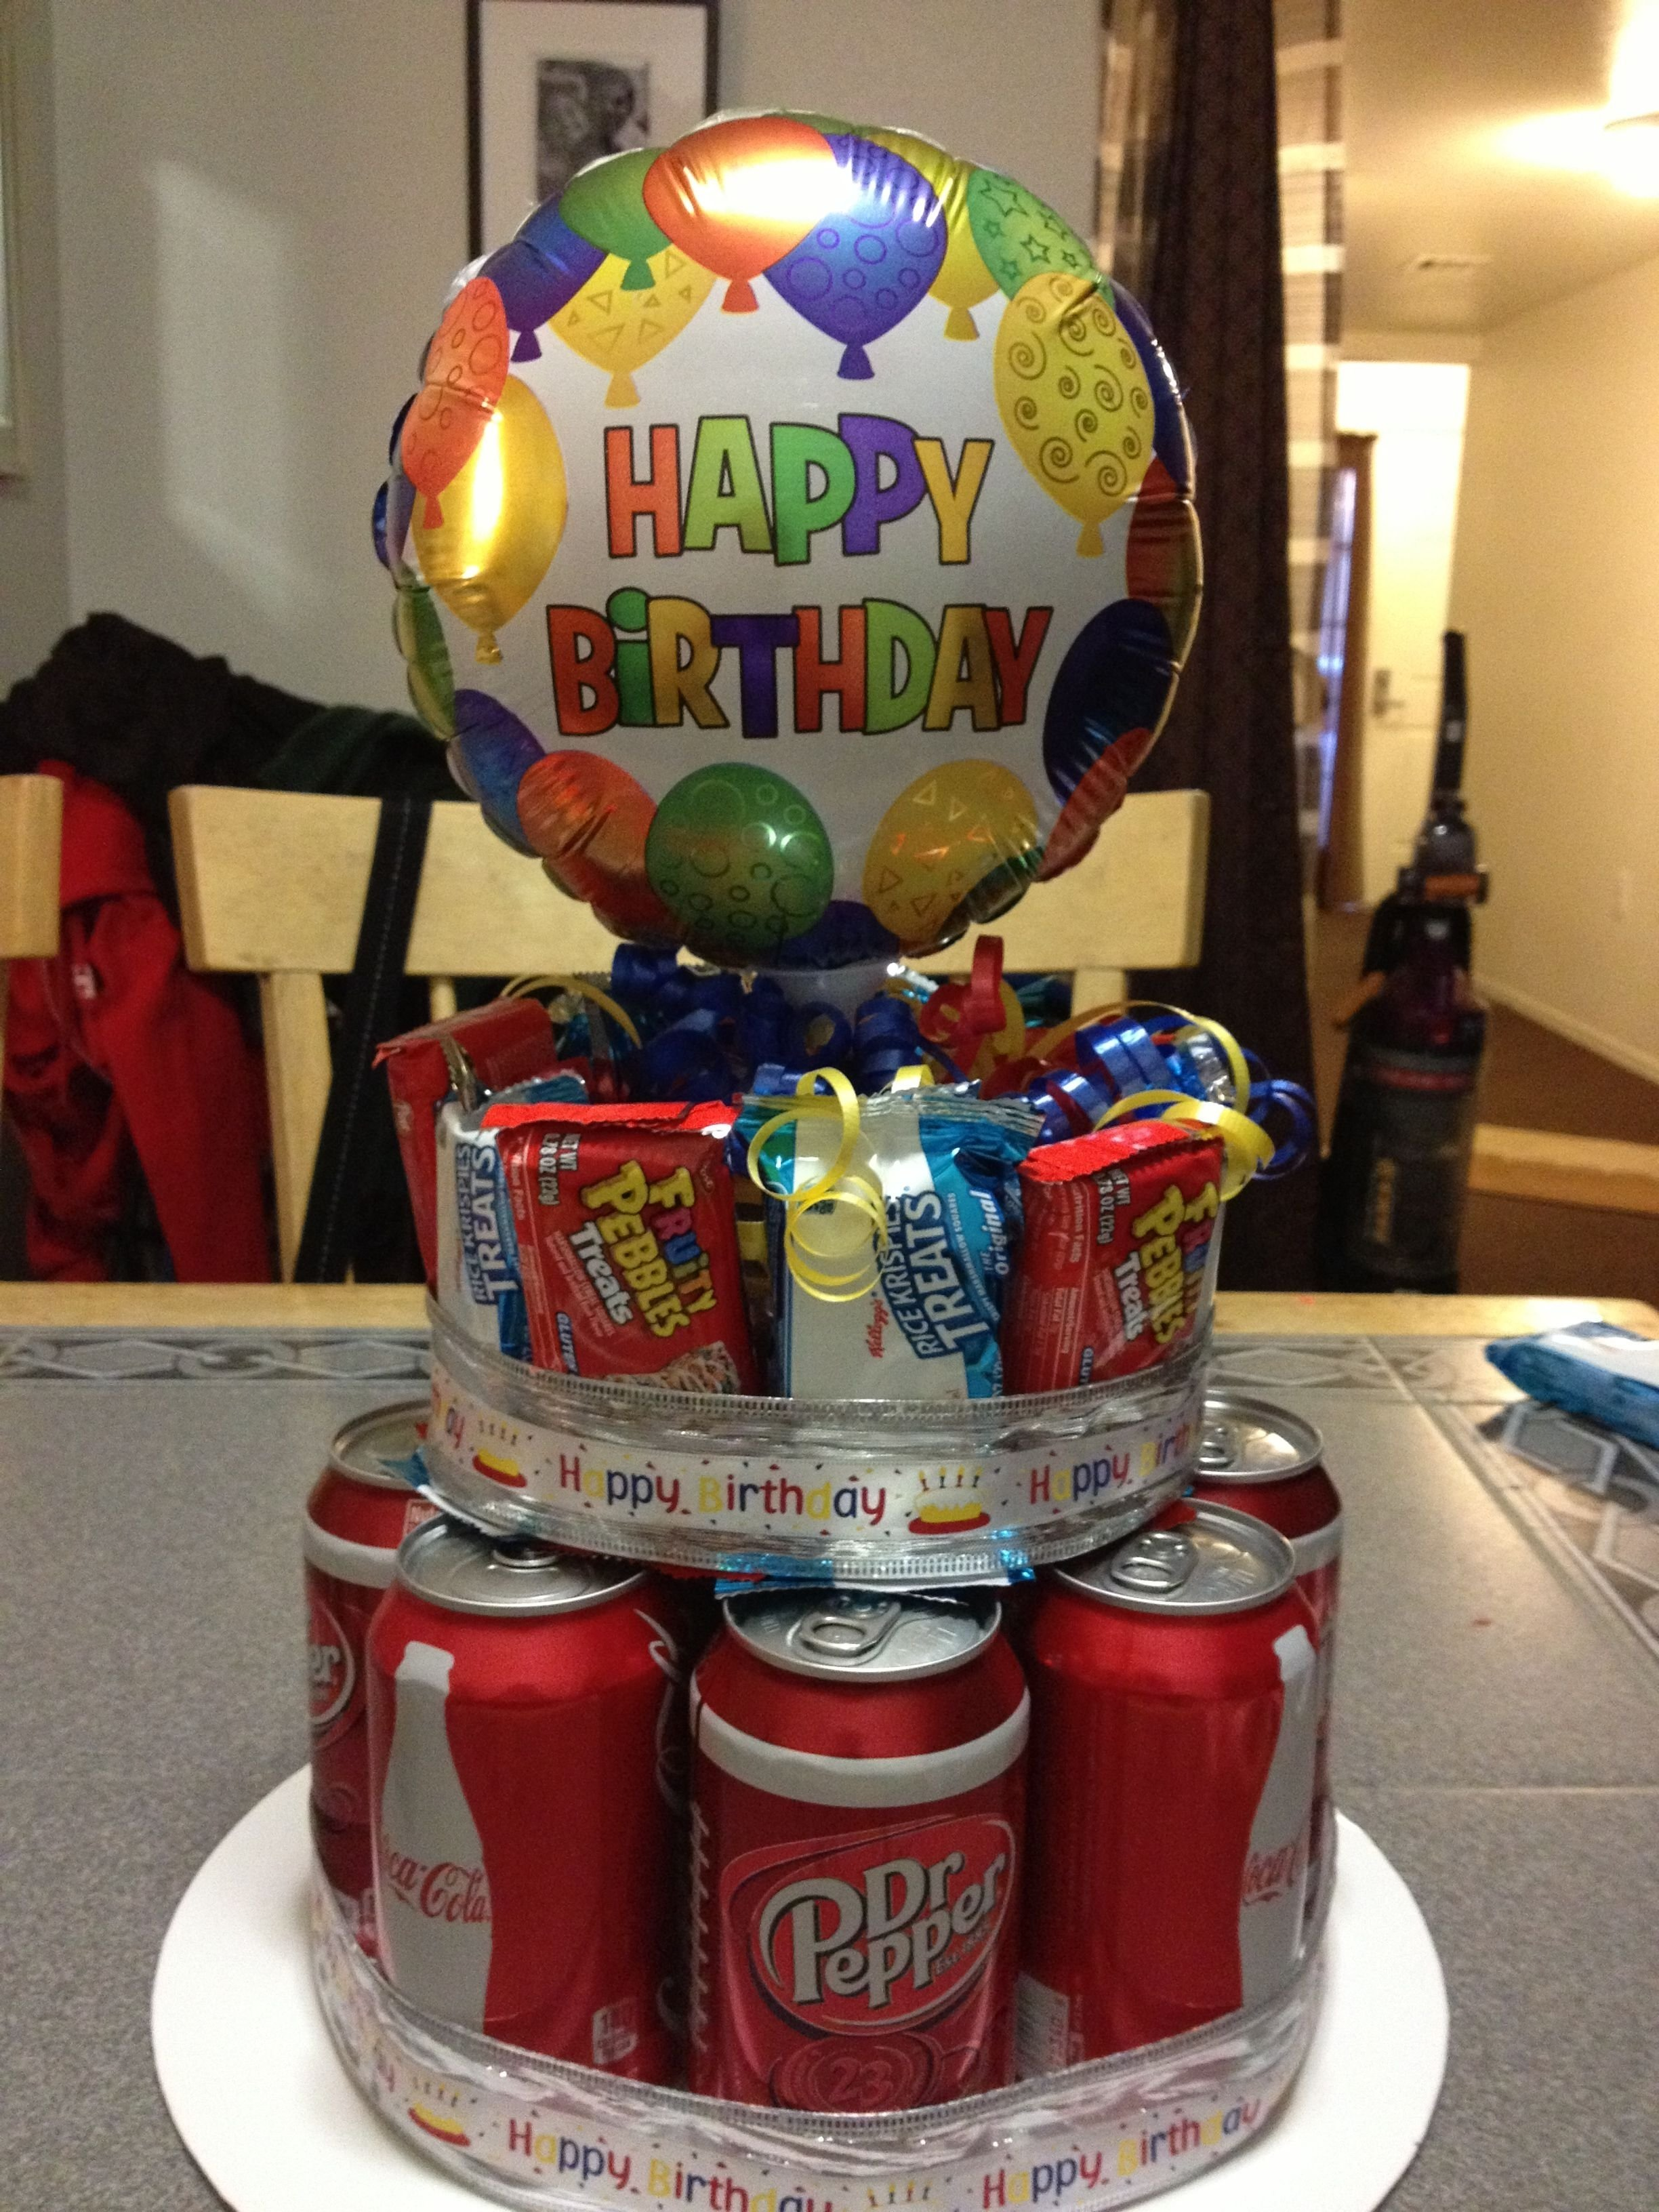 10 Famous Birthday Gift Ideas For 14 Year Old Boy birthday cake for my 14 year old son i got this idea from pinterest 4